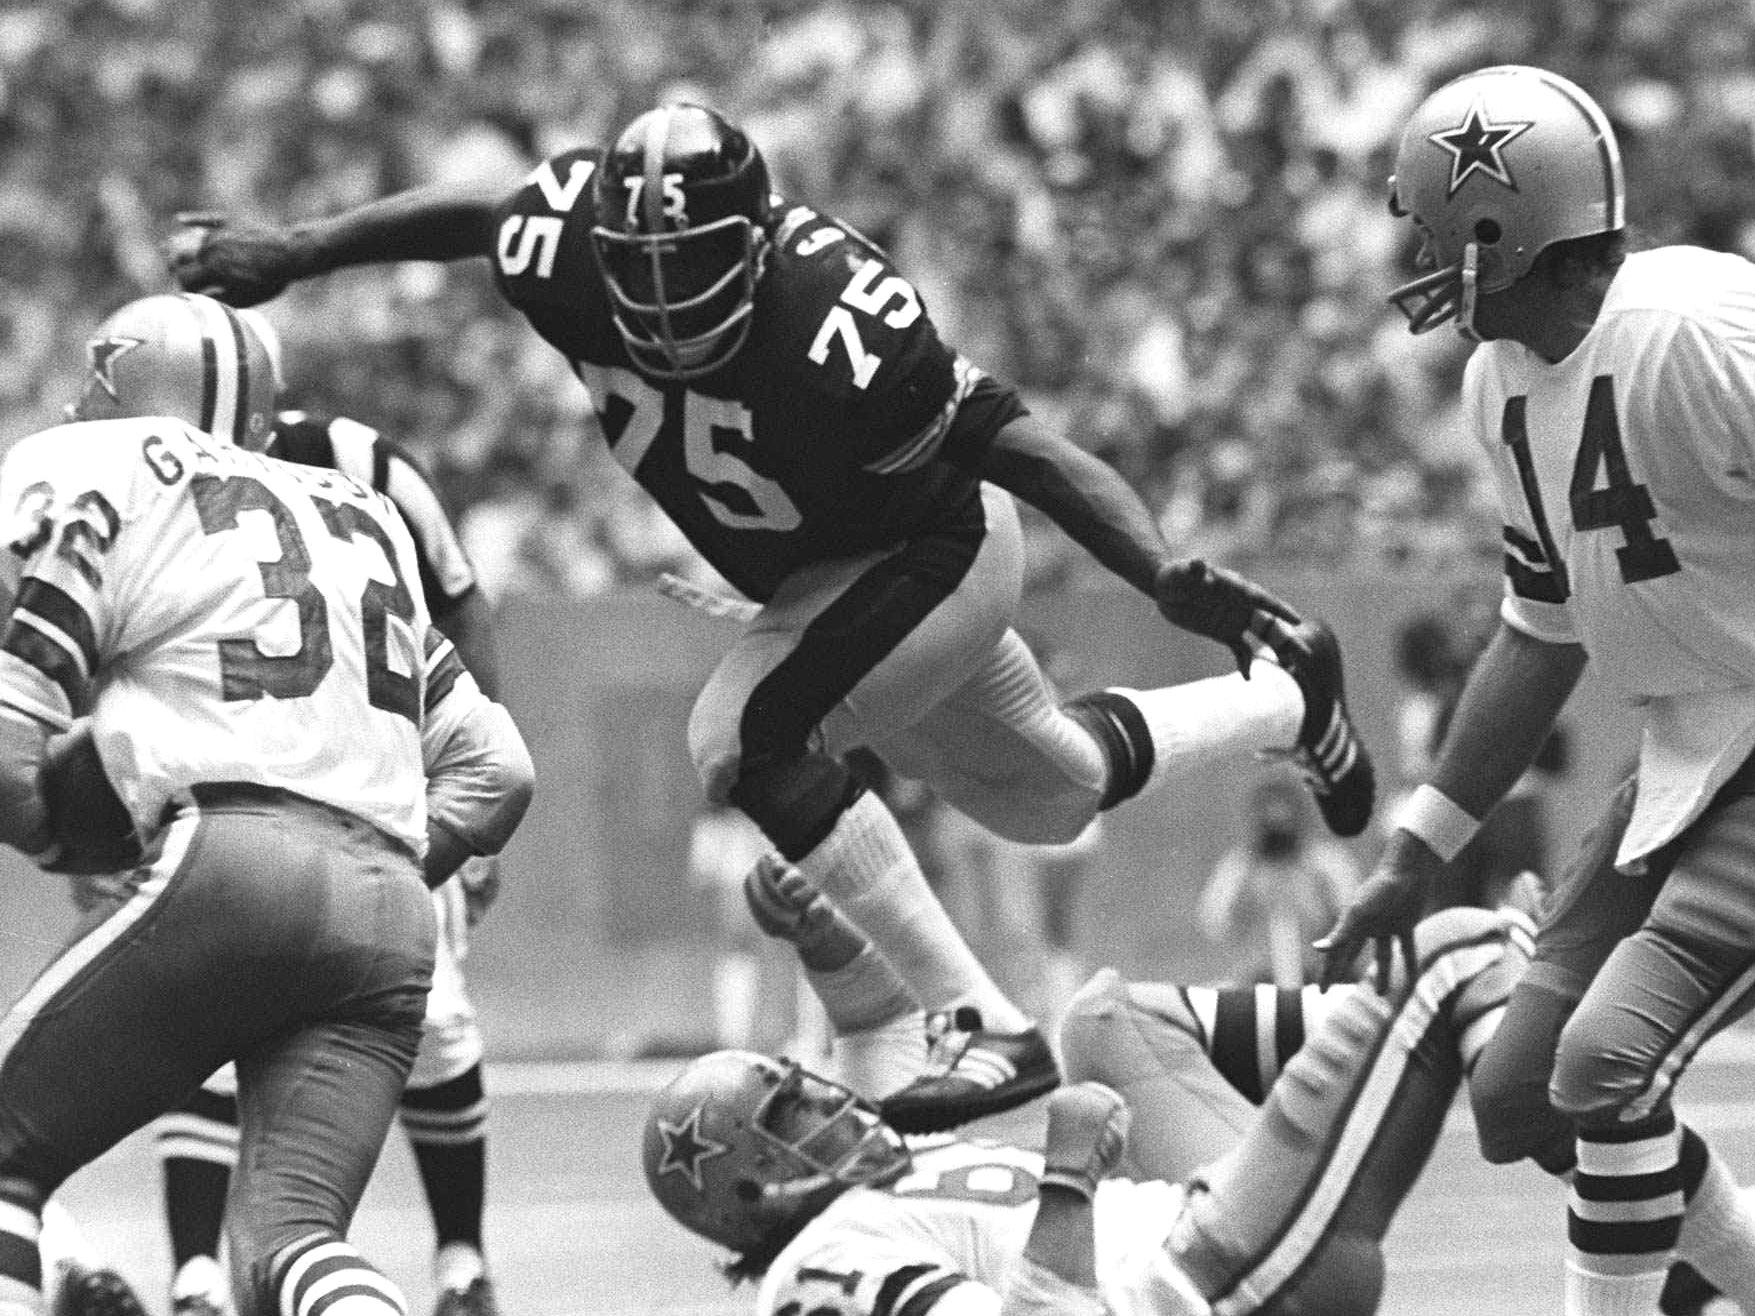 """Mean"" Joe Greene - Intense style of play for Steelers' famed Steel Curtain defense earned him his nickname."